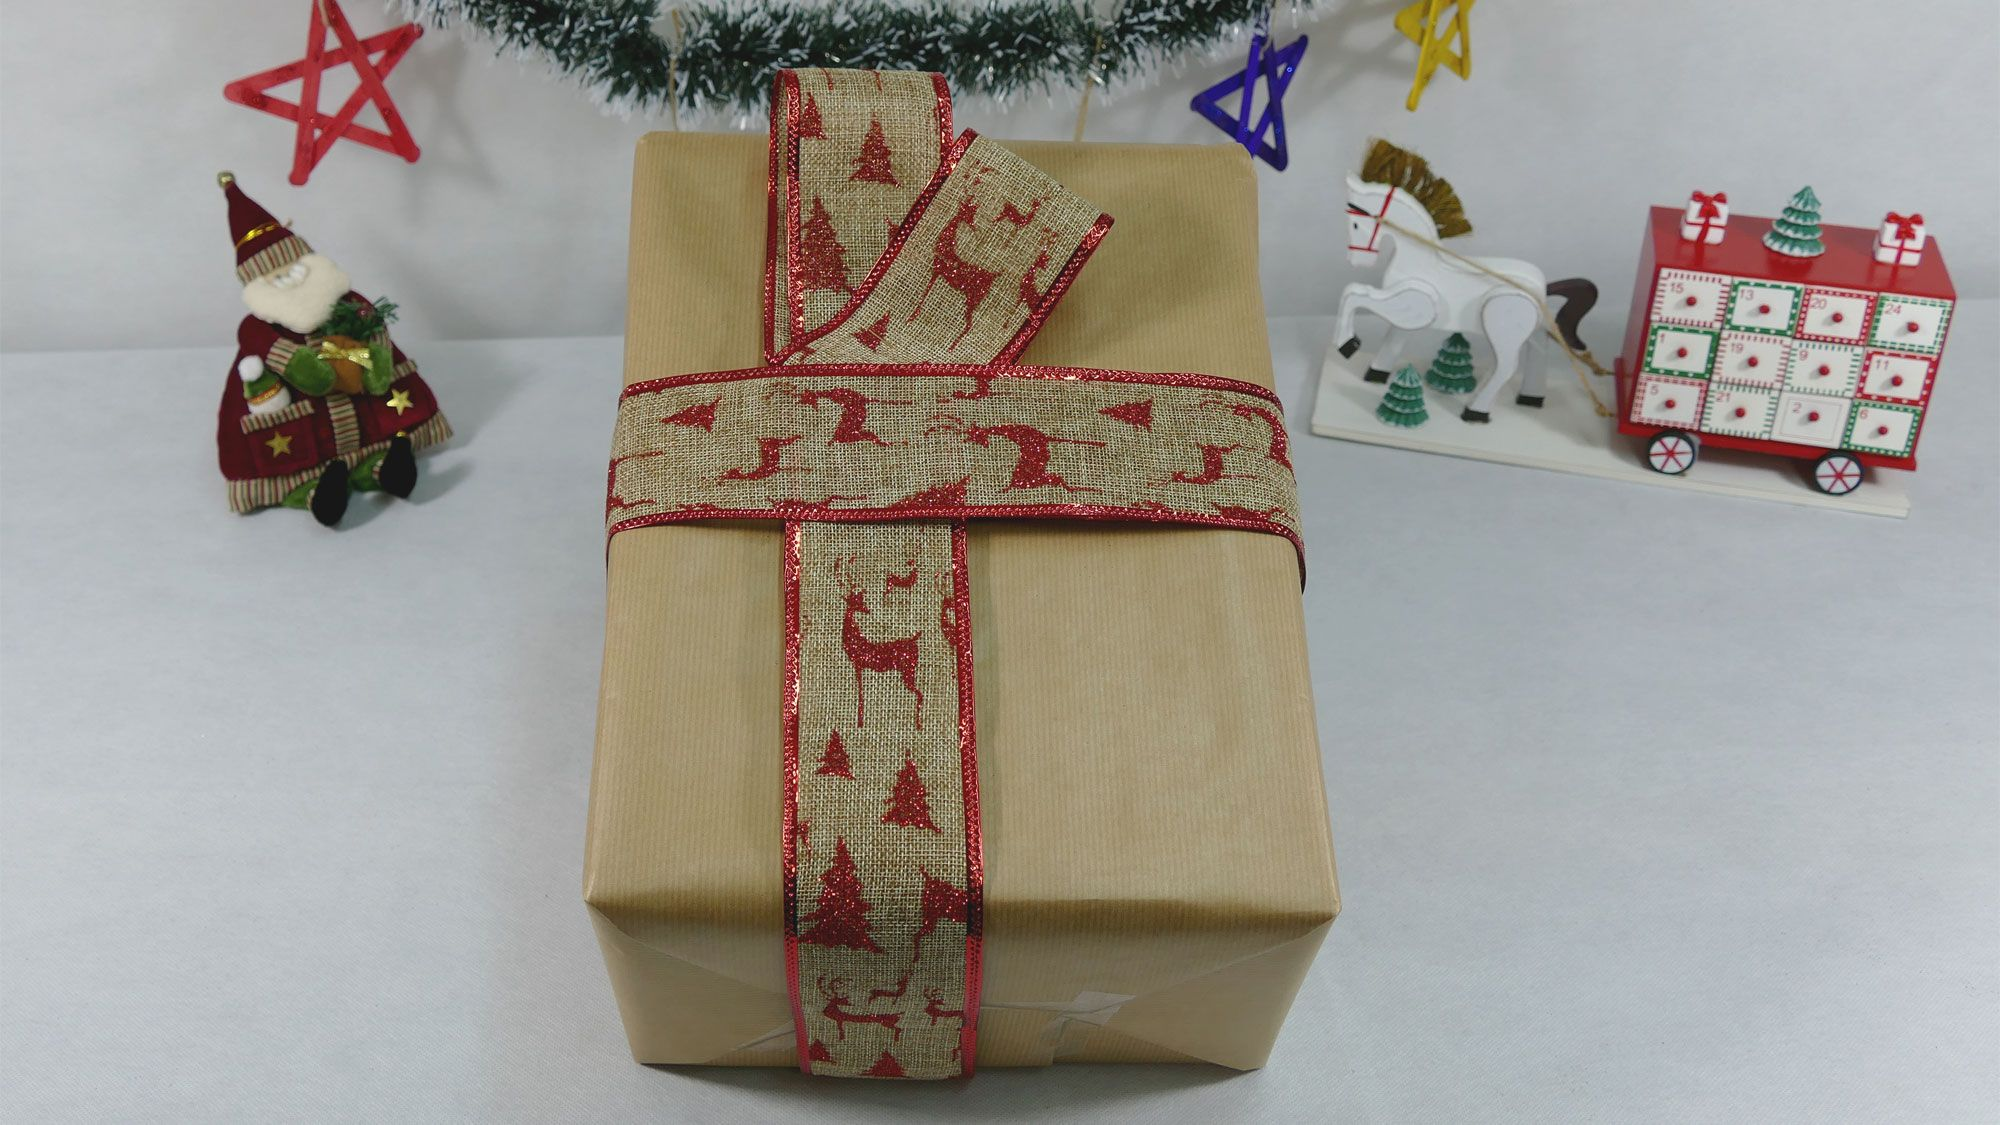 5 ideas para decorar regalos con papel kraft